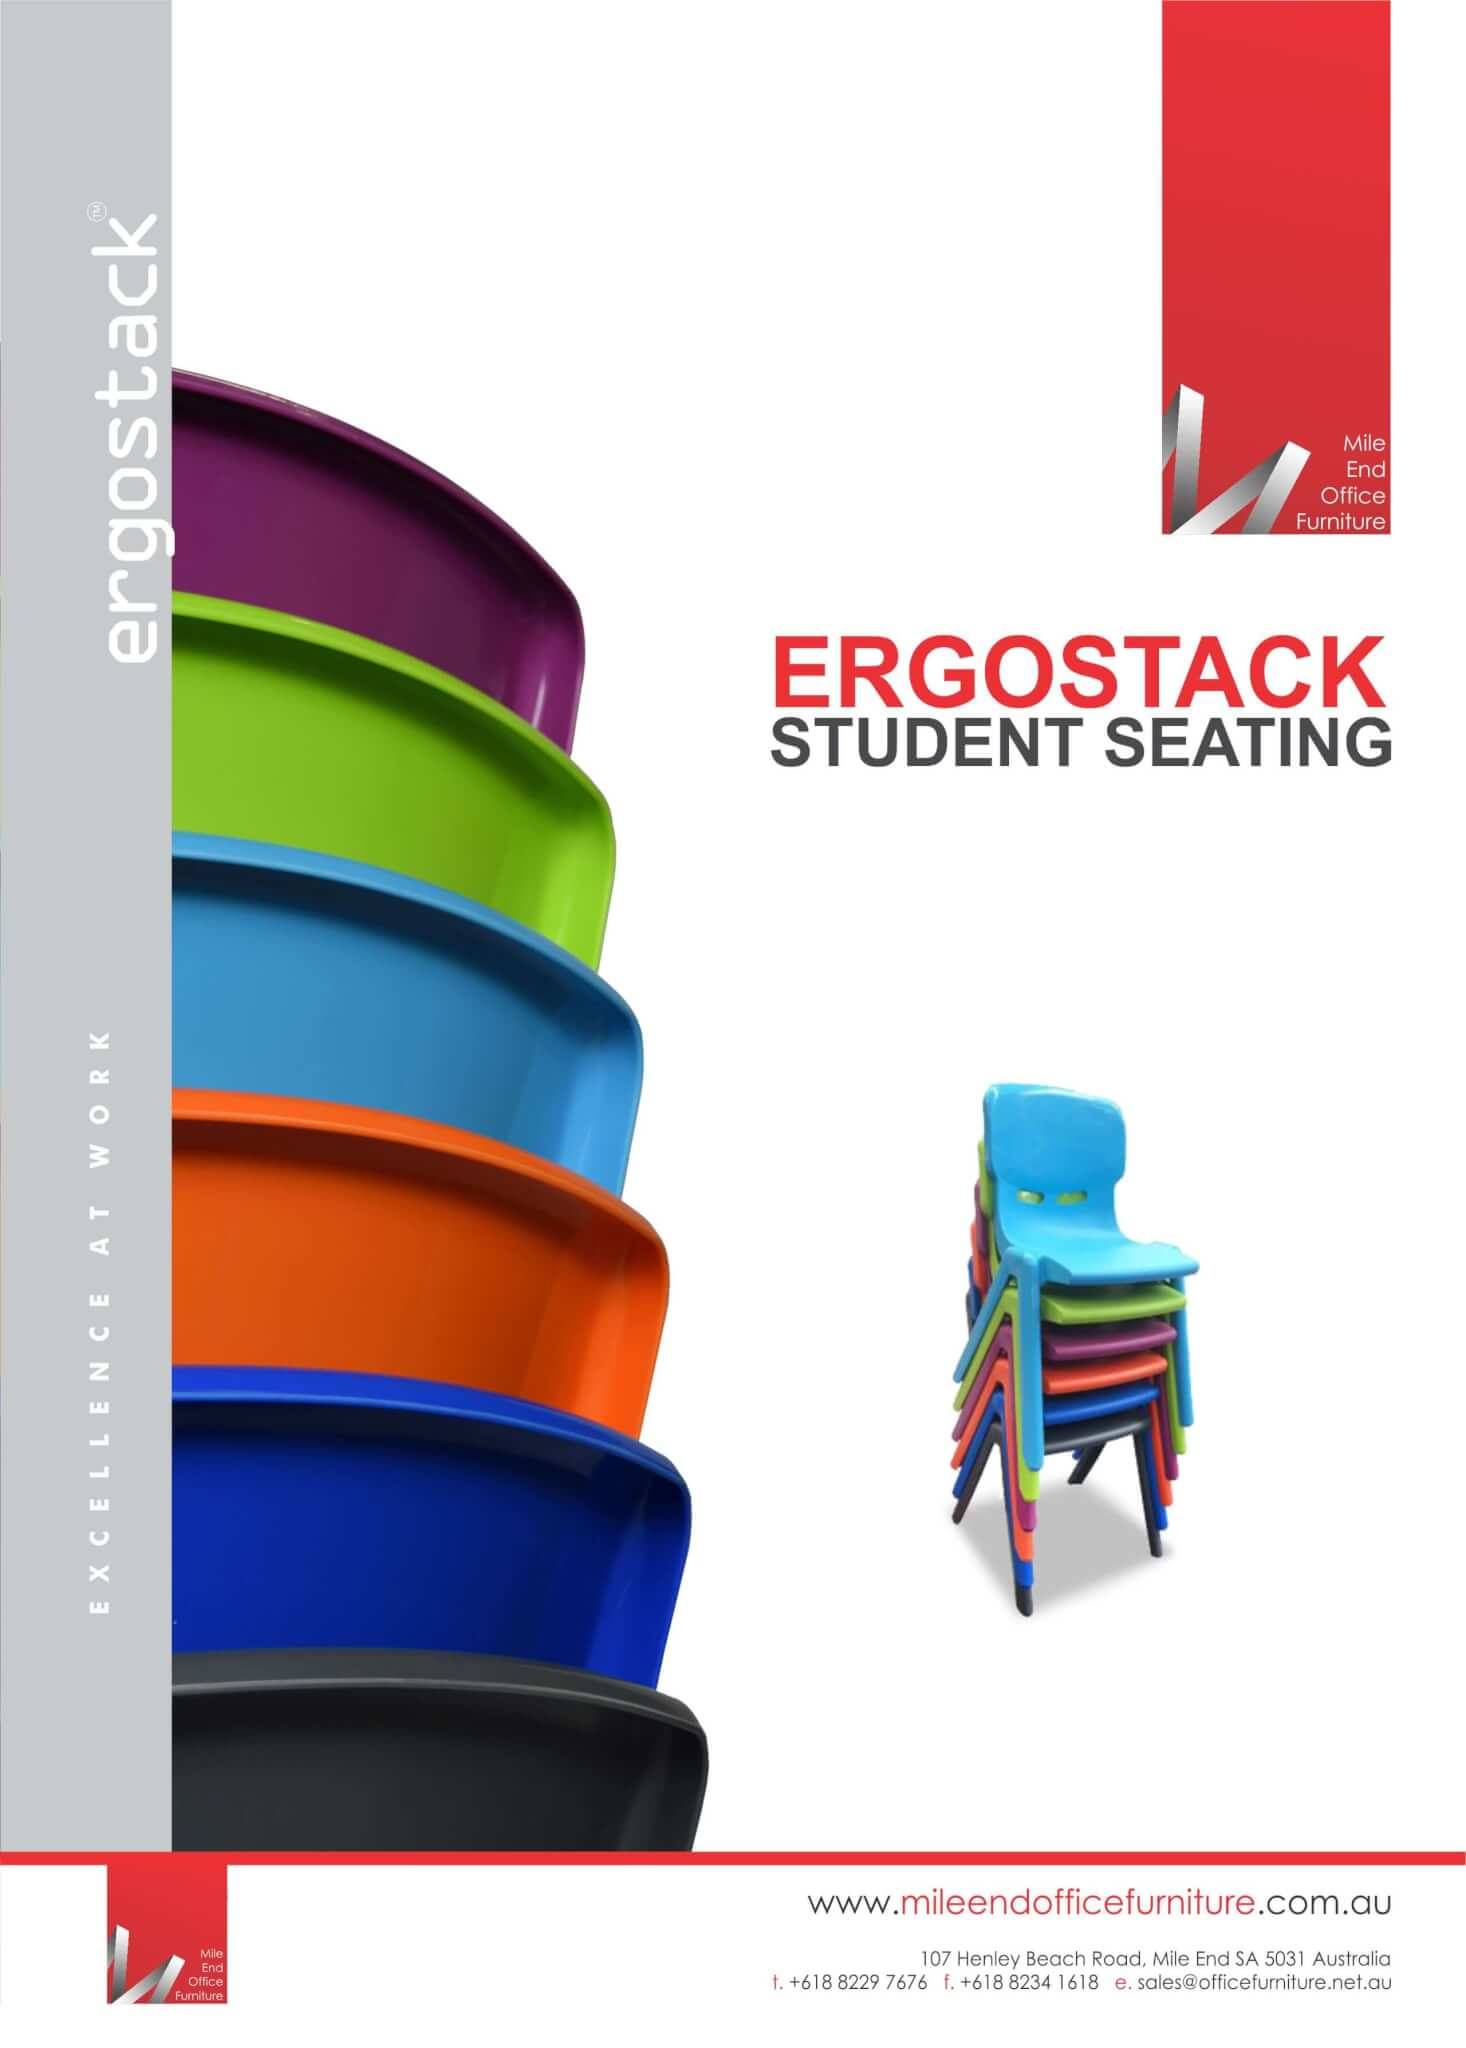 Ergostack Student Seating